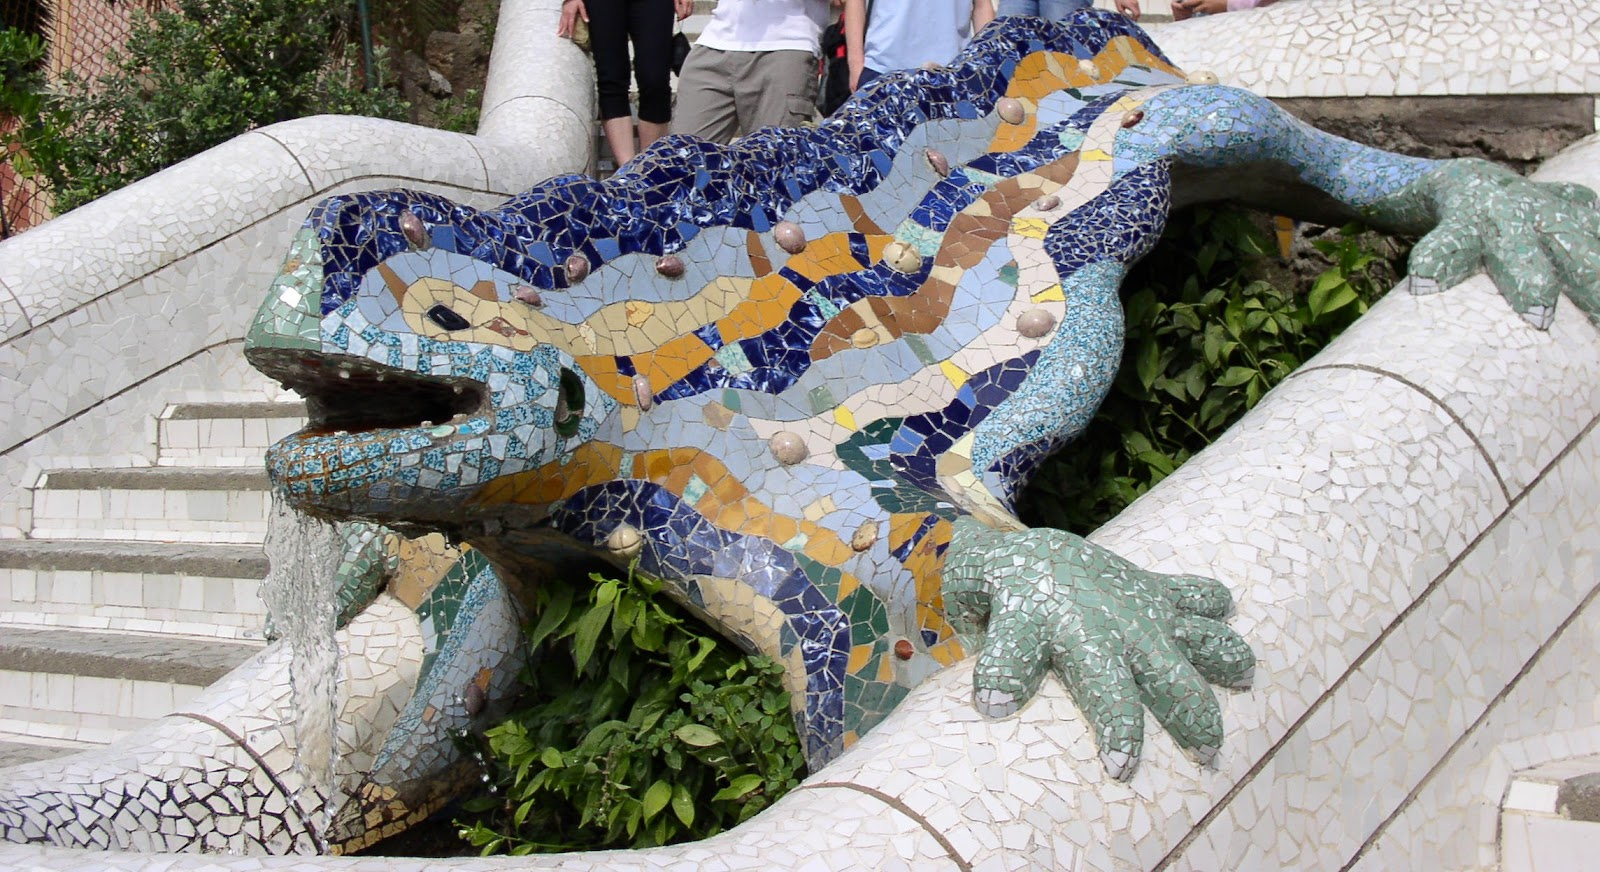 File:Reptil Parc Guell